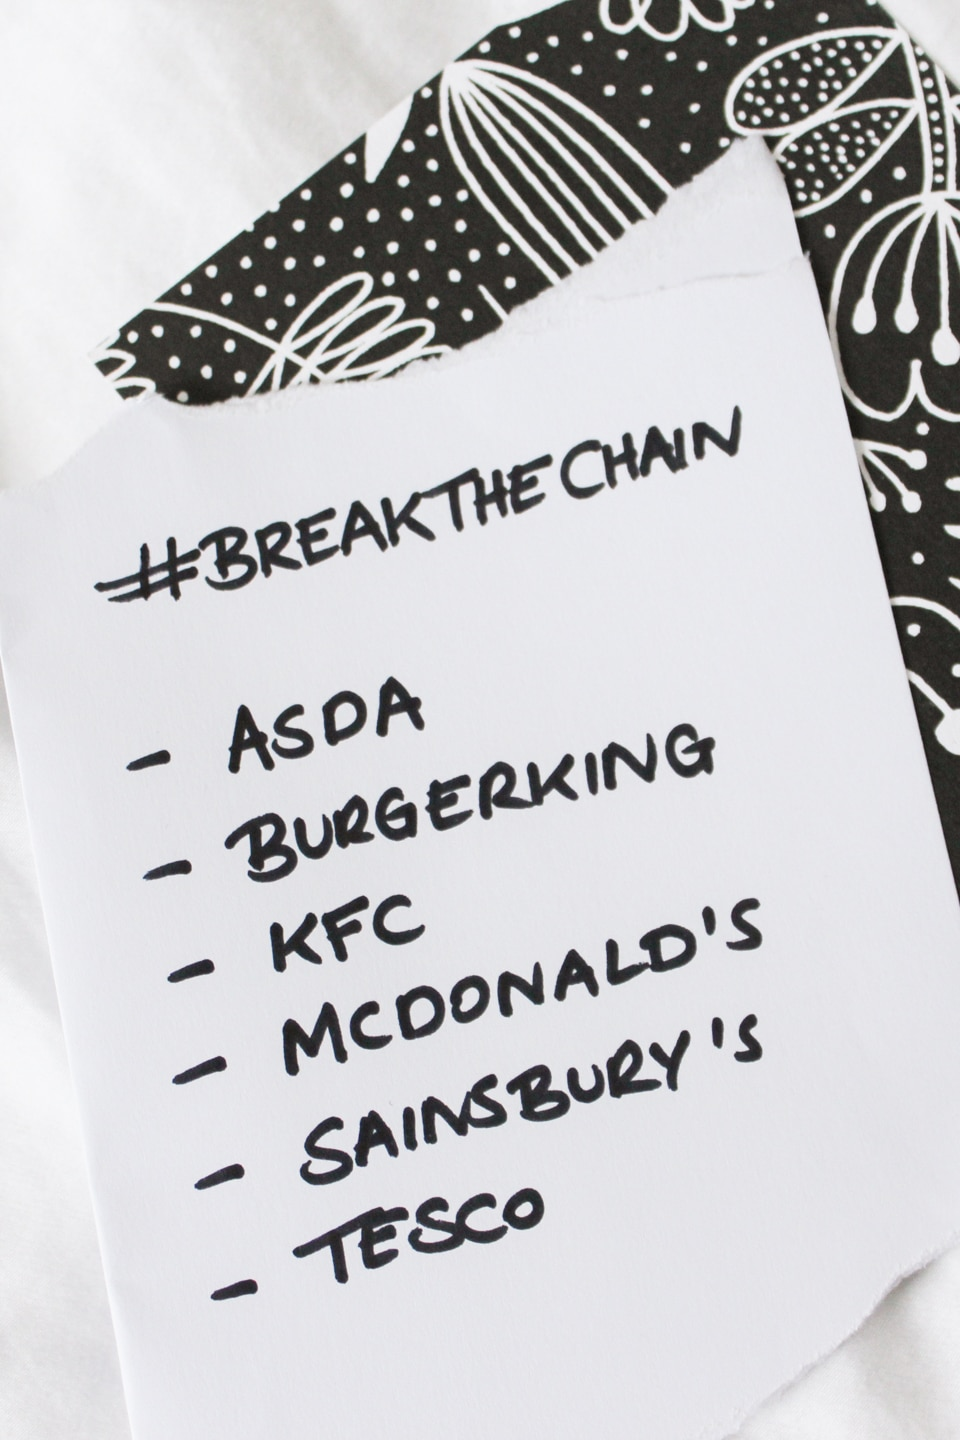 List with #BreakTheChain followed by list of businesses: ASDA, Burgerking, KFC, McDonald's, Sainsbury's, Tesco